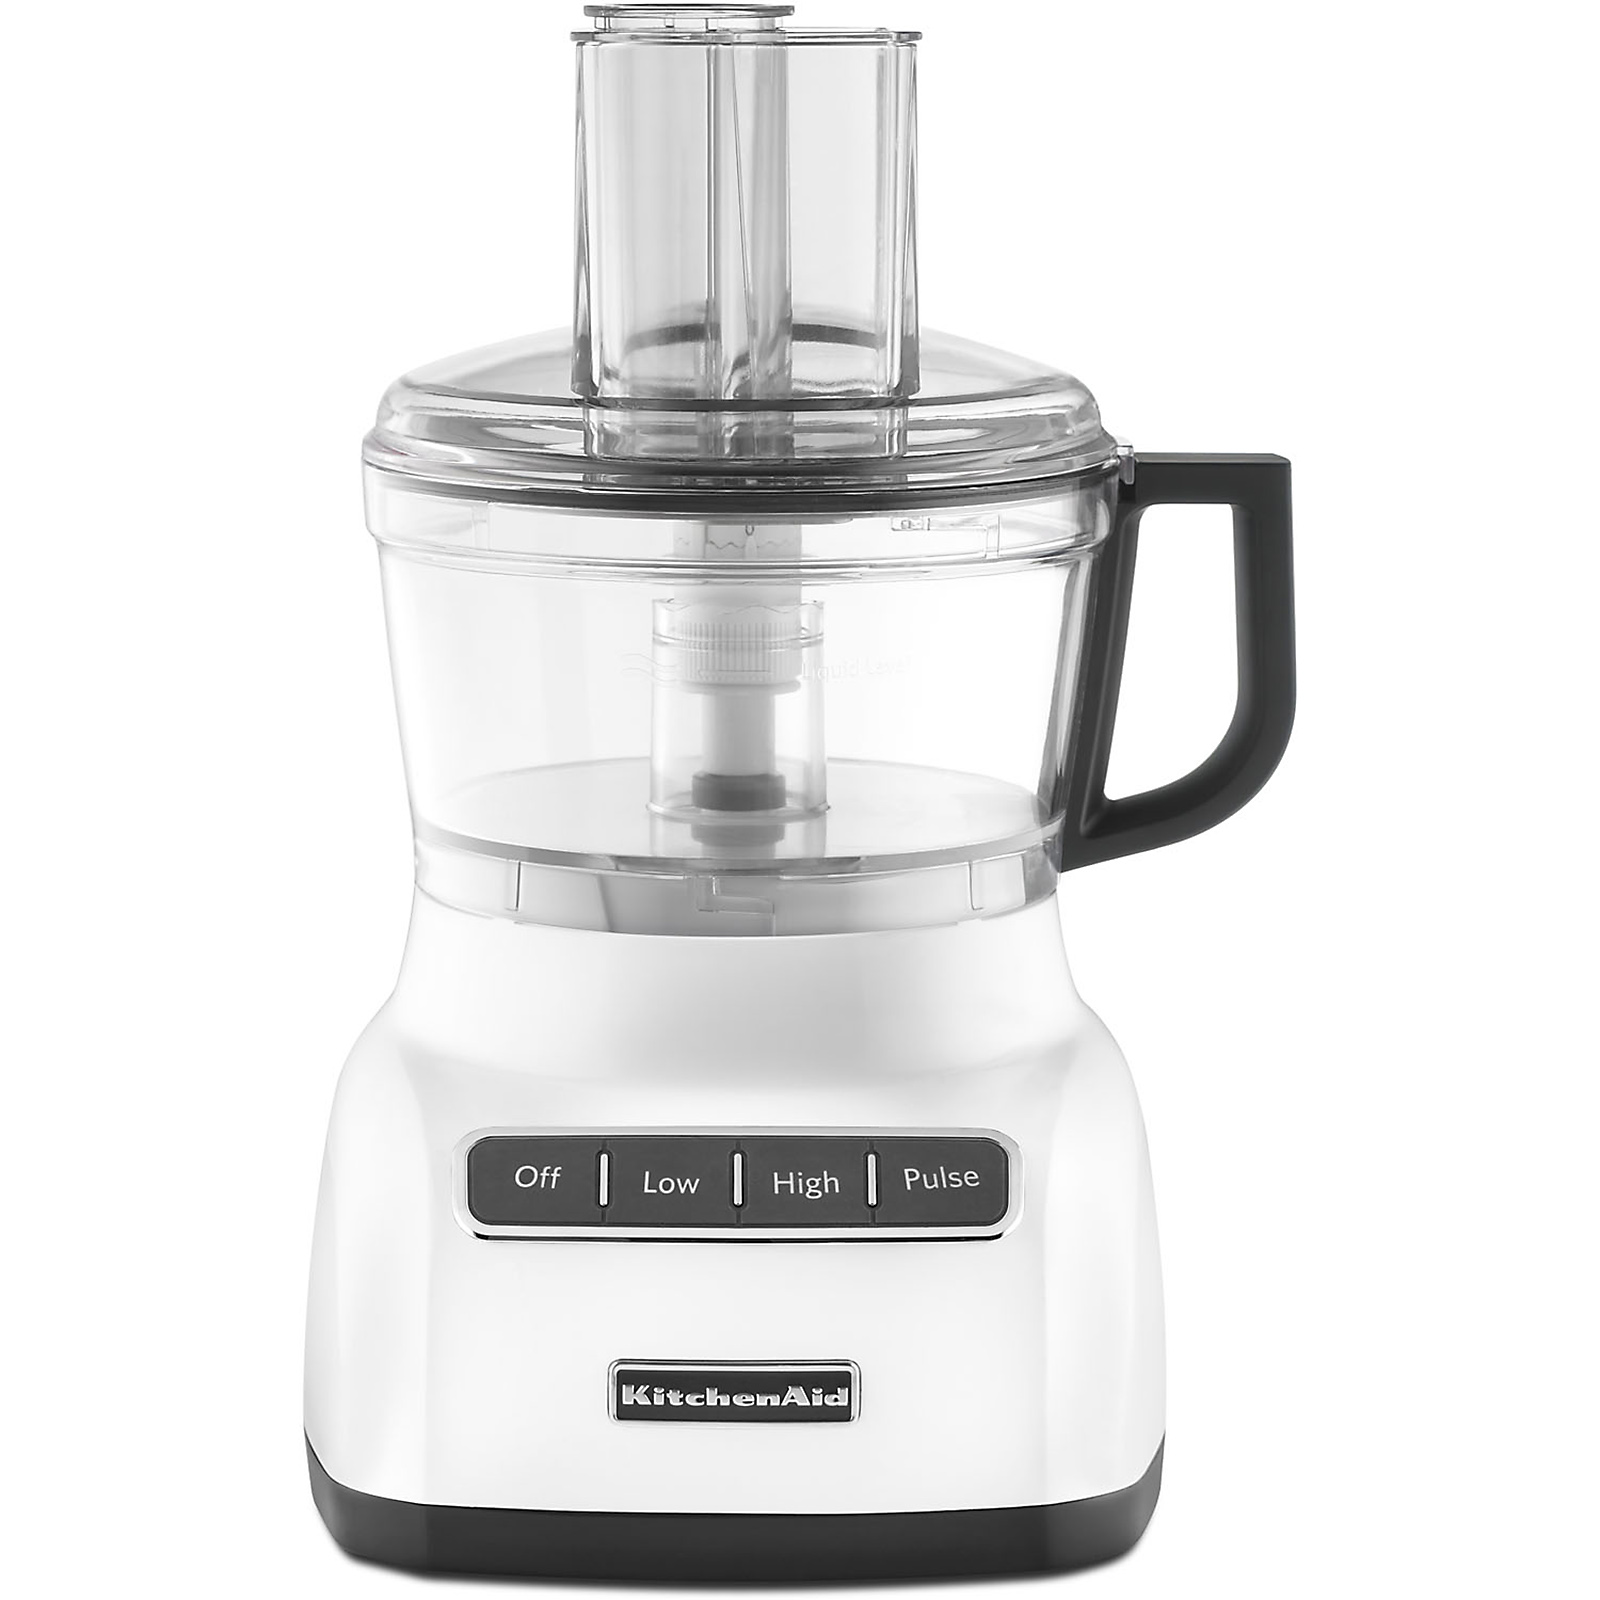 KitchenAid  KFP0711WH White 7-cup Food Processor PartNumber: 00847385000P